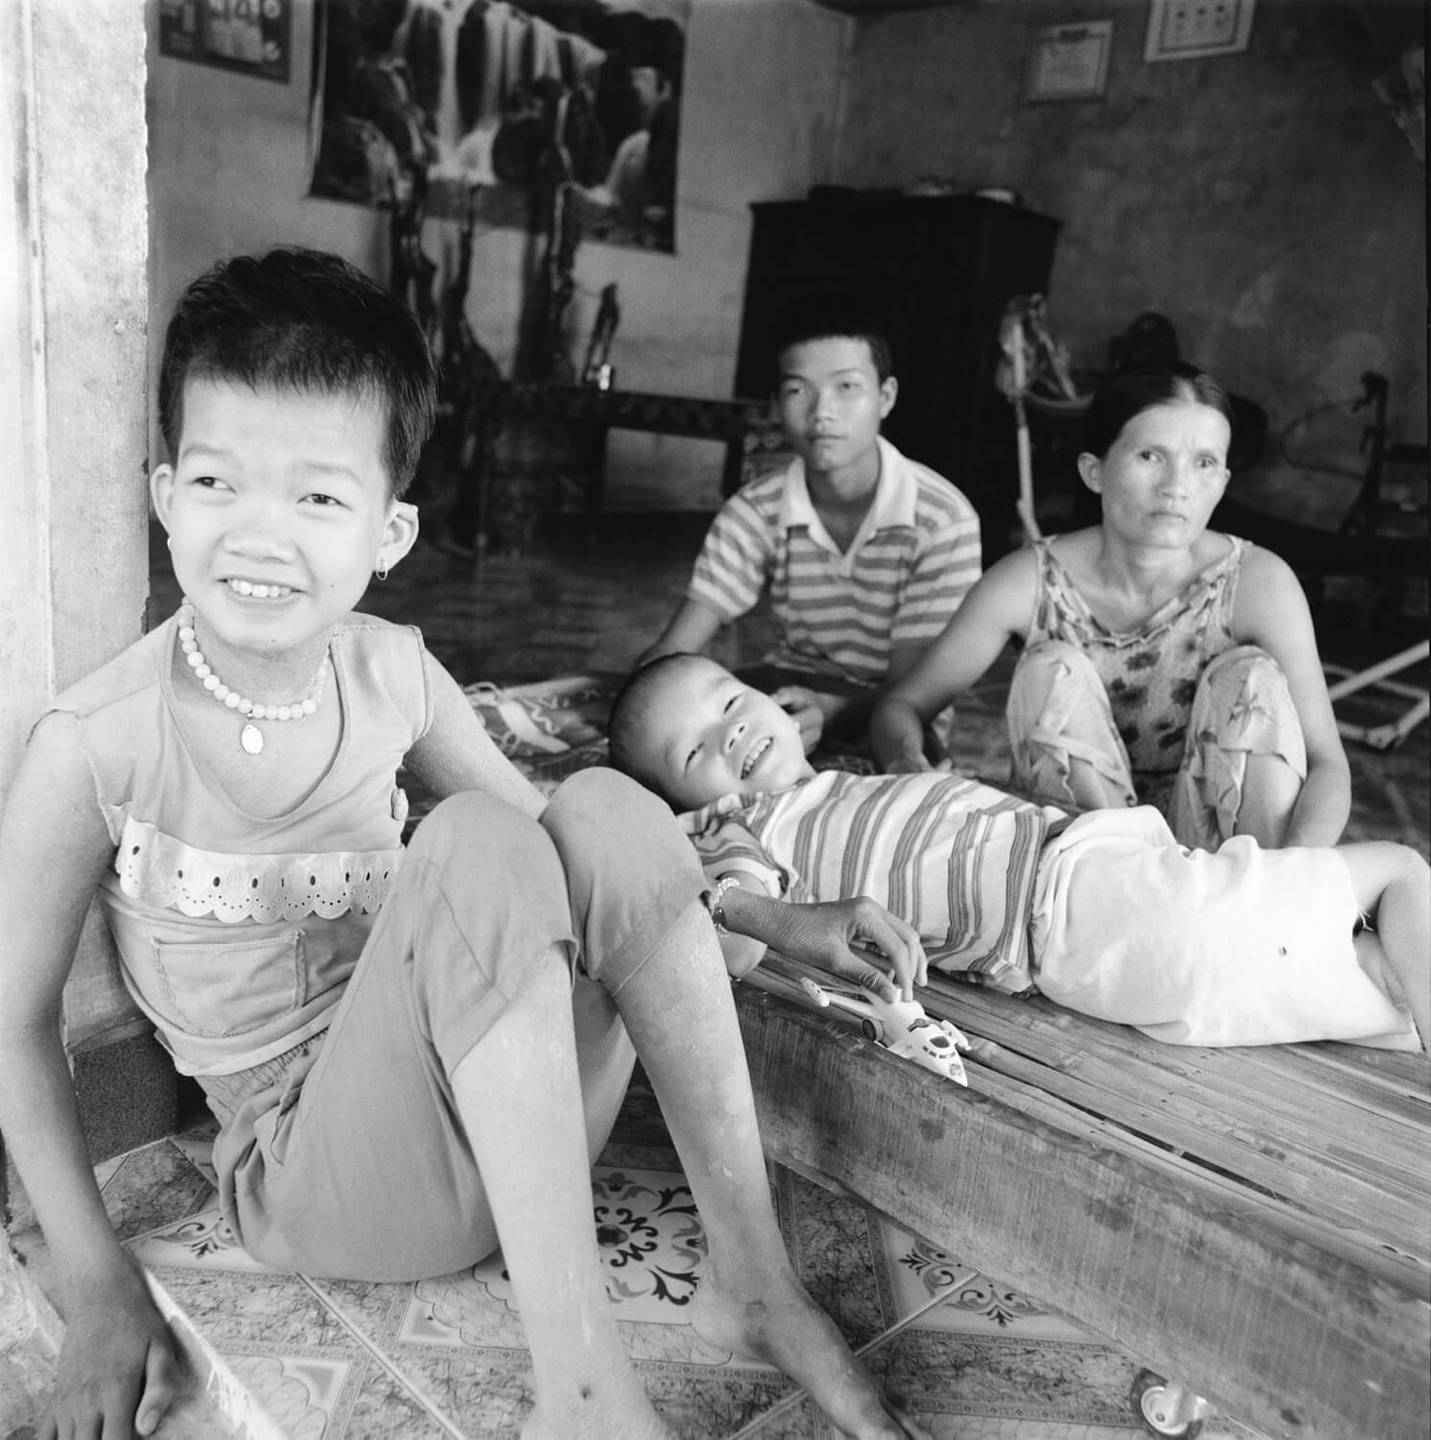 Two deformed Asian children, one seated, one lying down, with two adults.